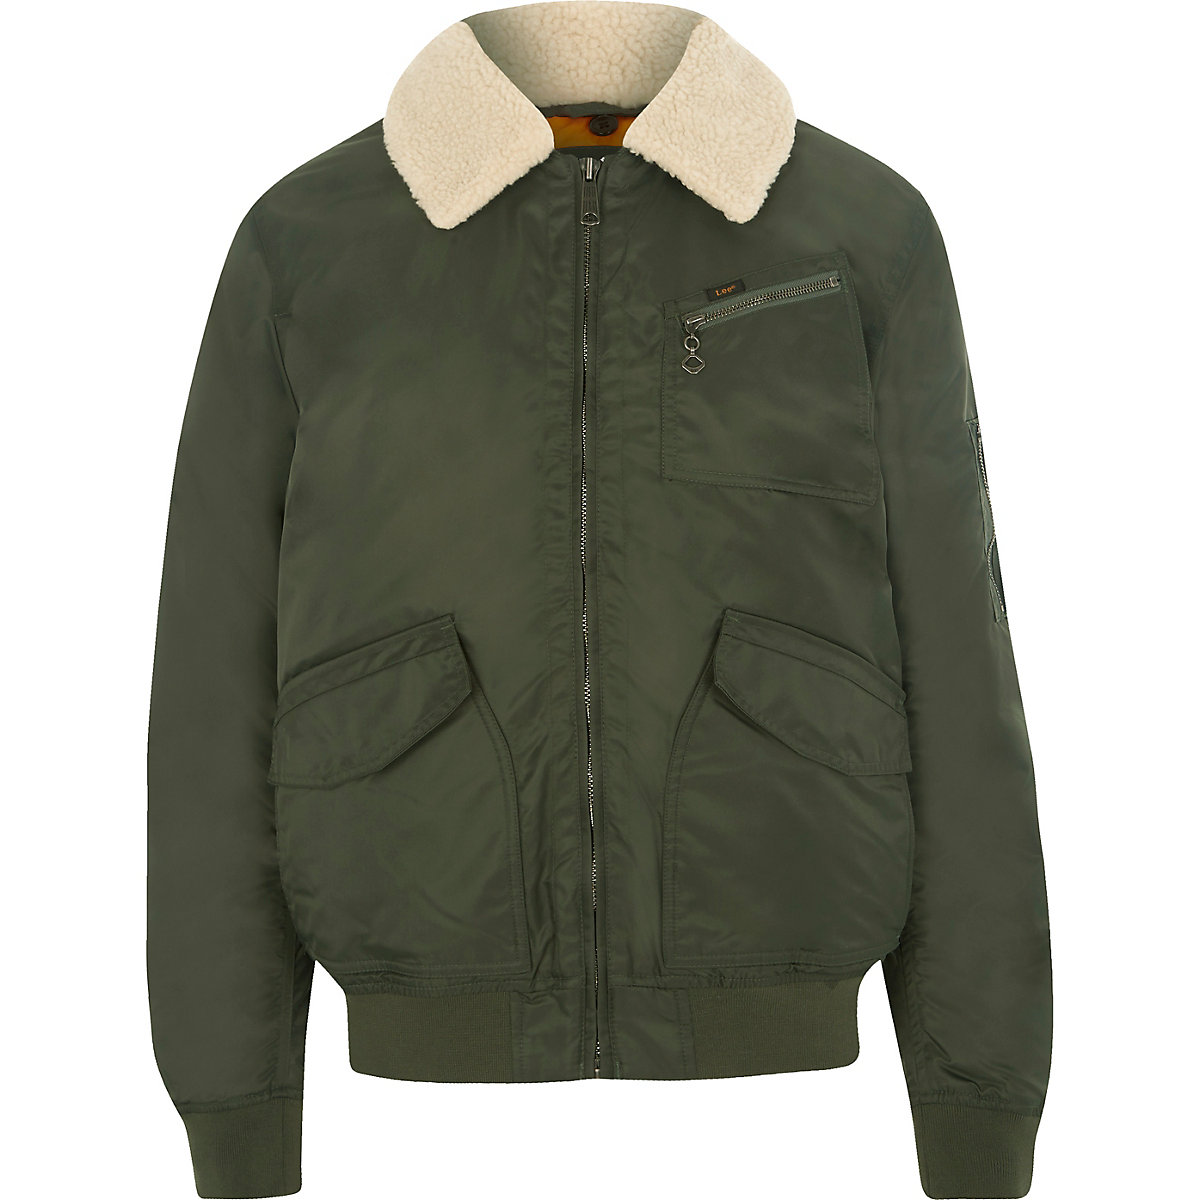 Lee khaki green borg collar coach jacket